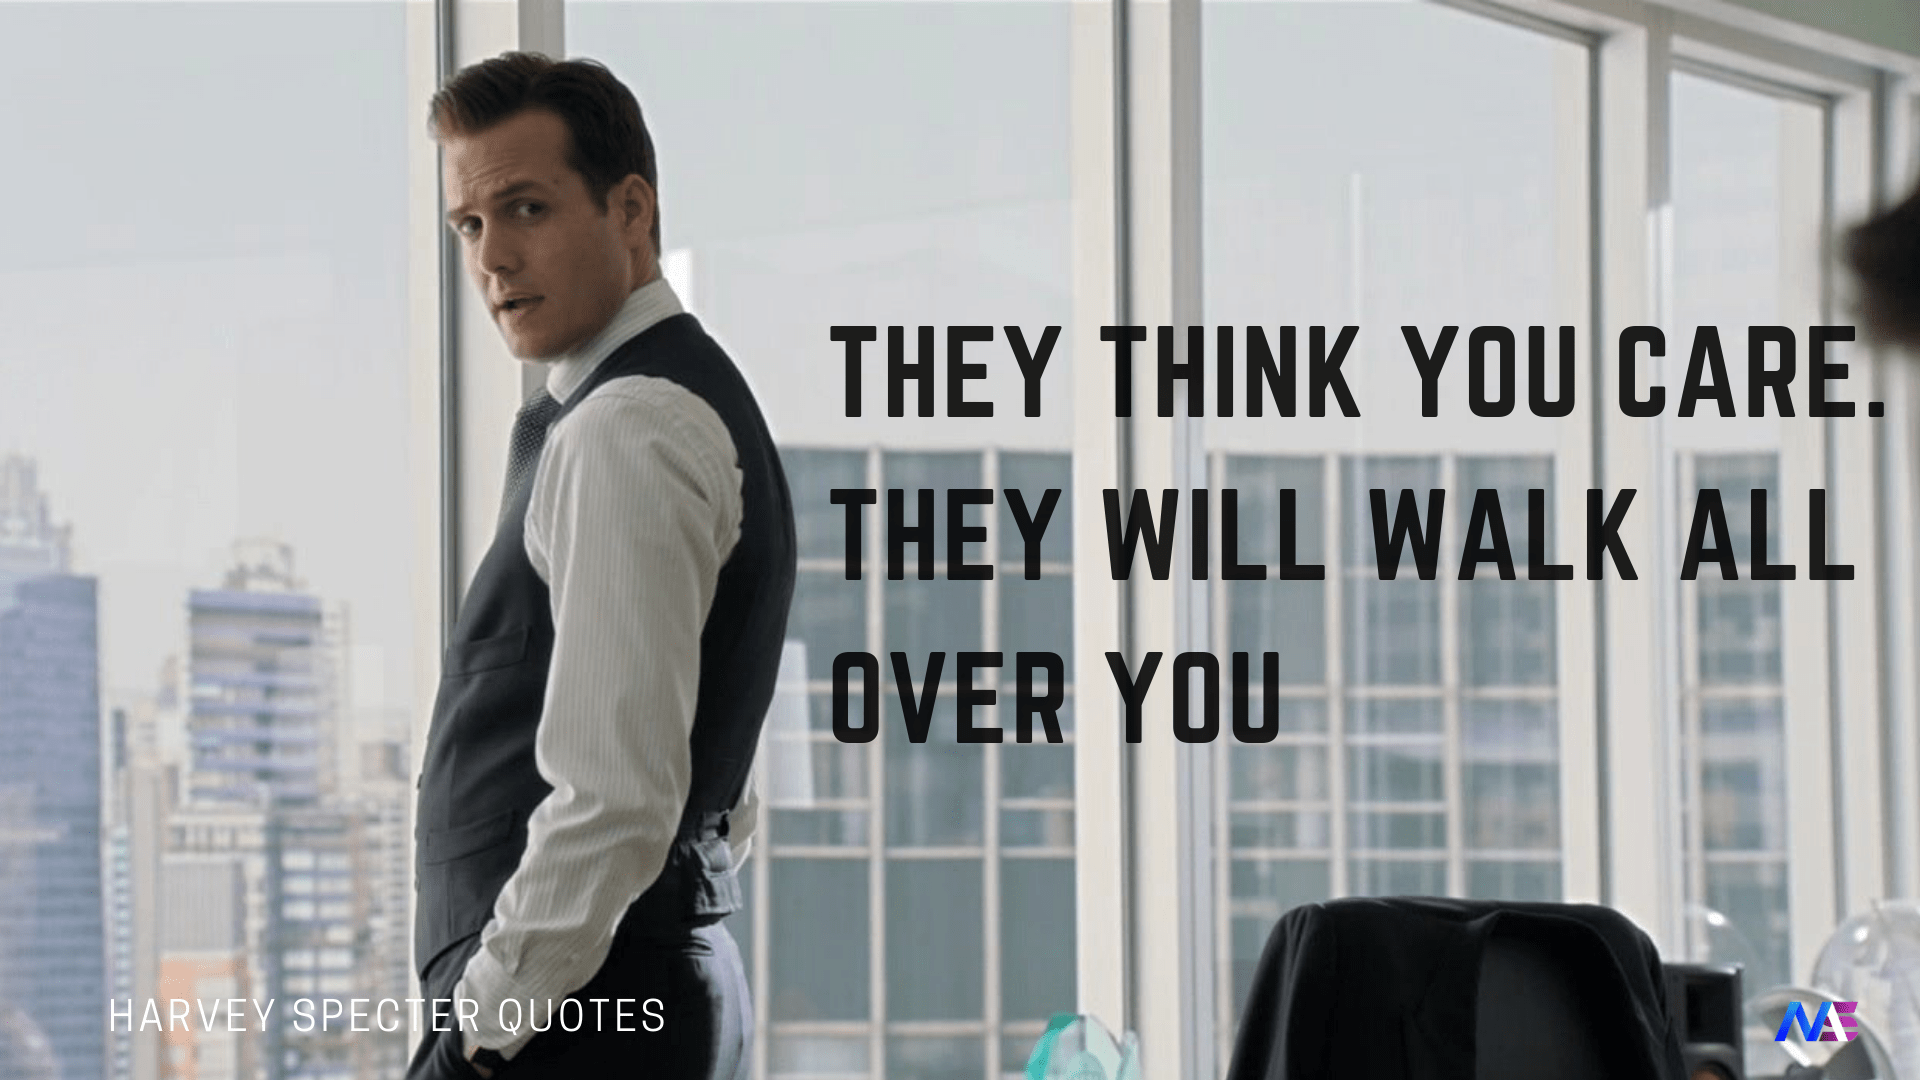 27 Witty Badass Harvey Specter Quotes That Will Motivate You They Think You Care They Will Walk All Harvey Specter Quotes Harvey Specter Steve Harvey Quotes